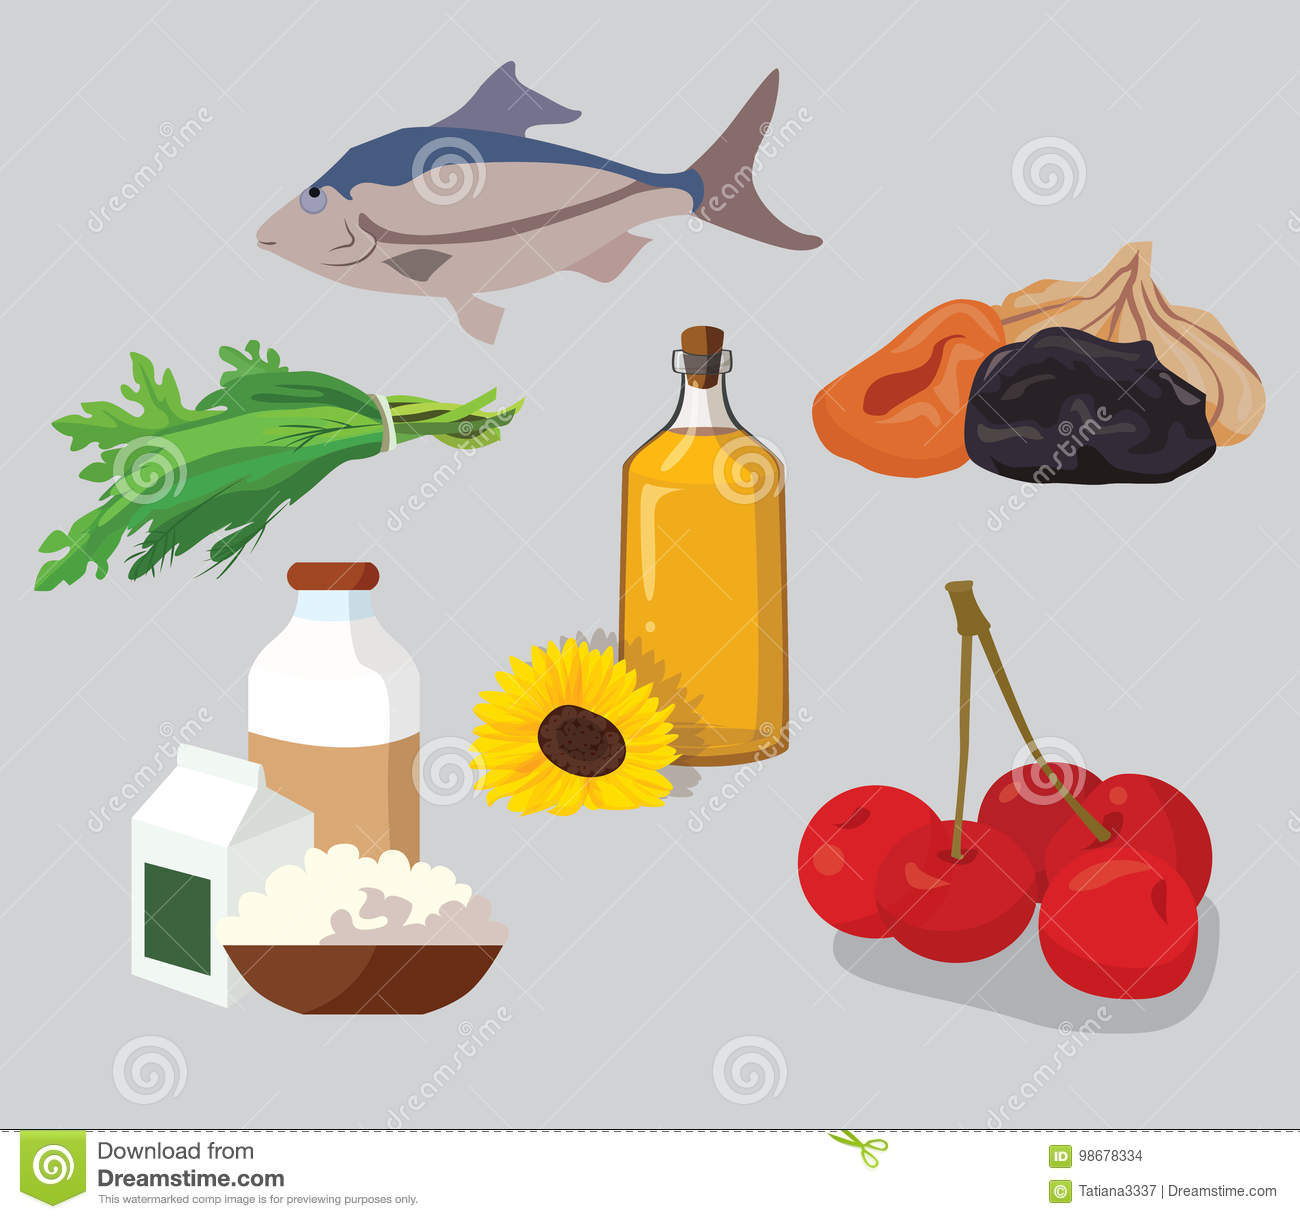 Dried fruits, cherries, dairy products, greens, vegetable oil, f